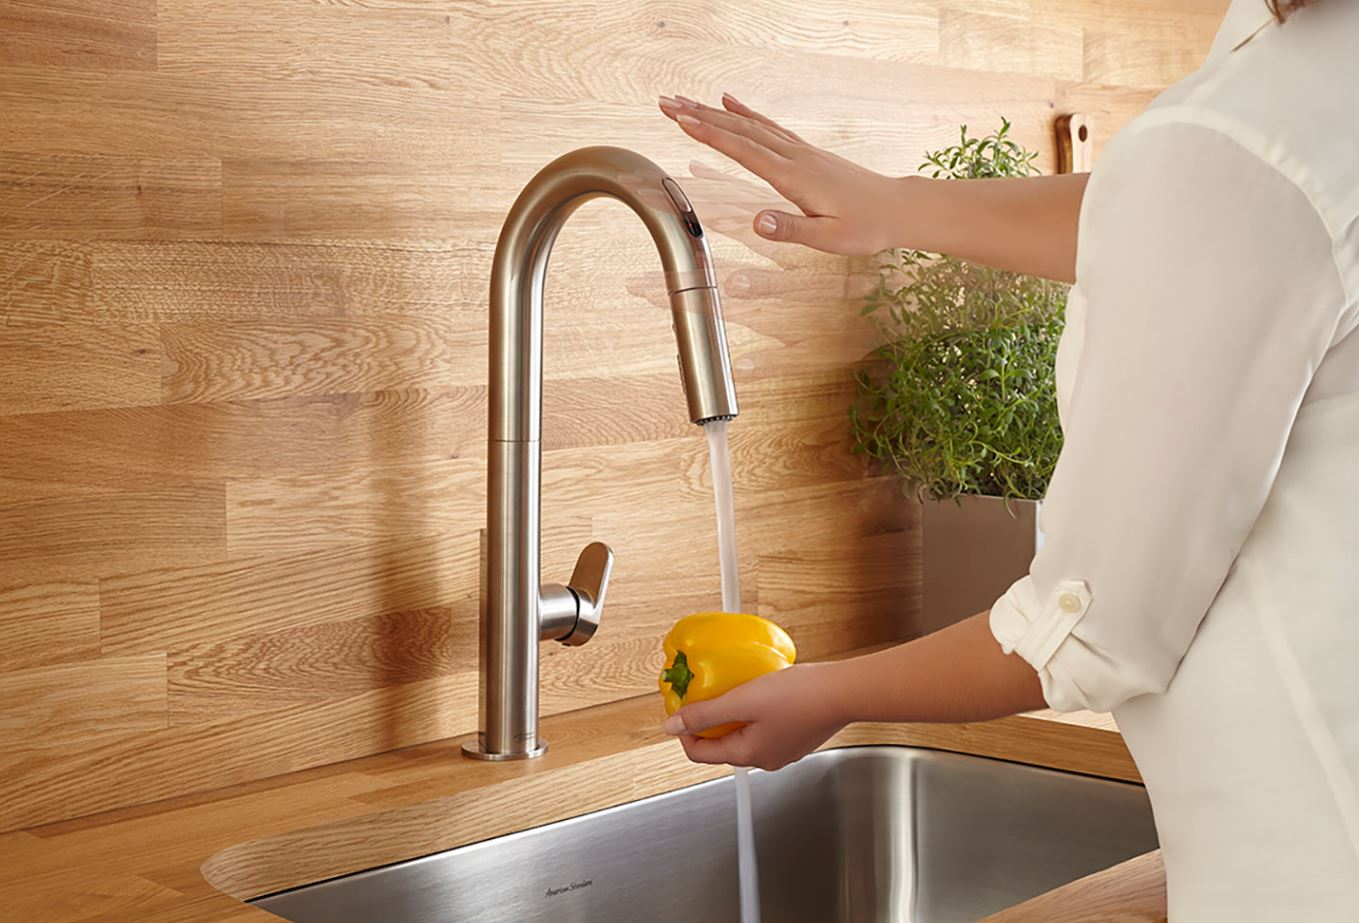 Kitchen Faucet Offers Hands-Free Technology to Improve ...